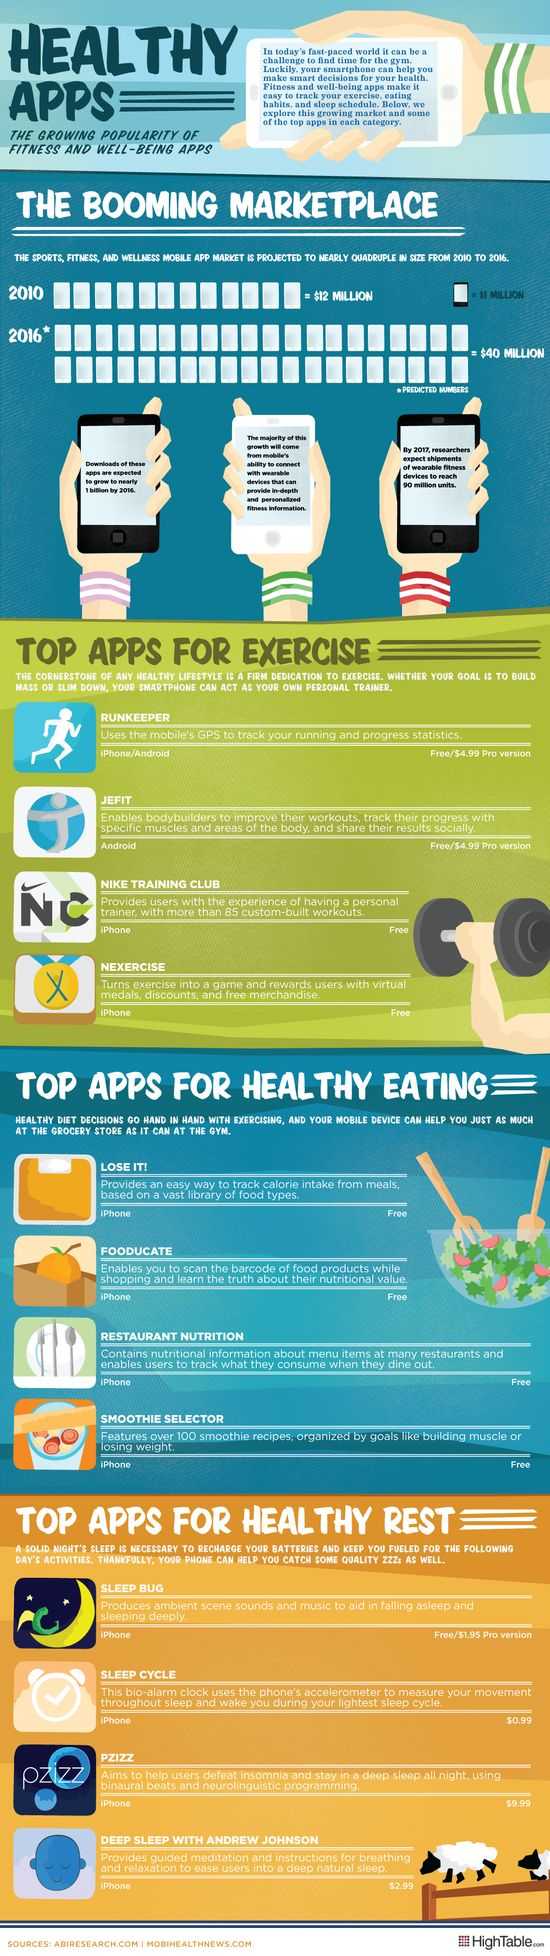 INFOGRAPHIC: Healthy Apps